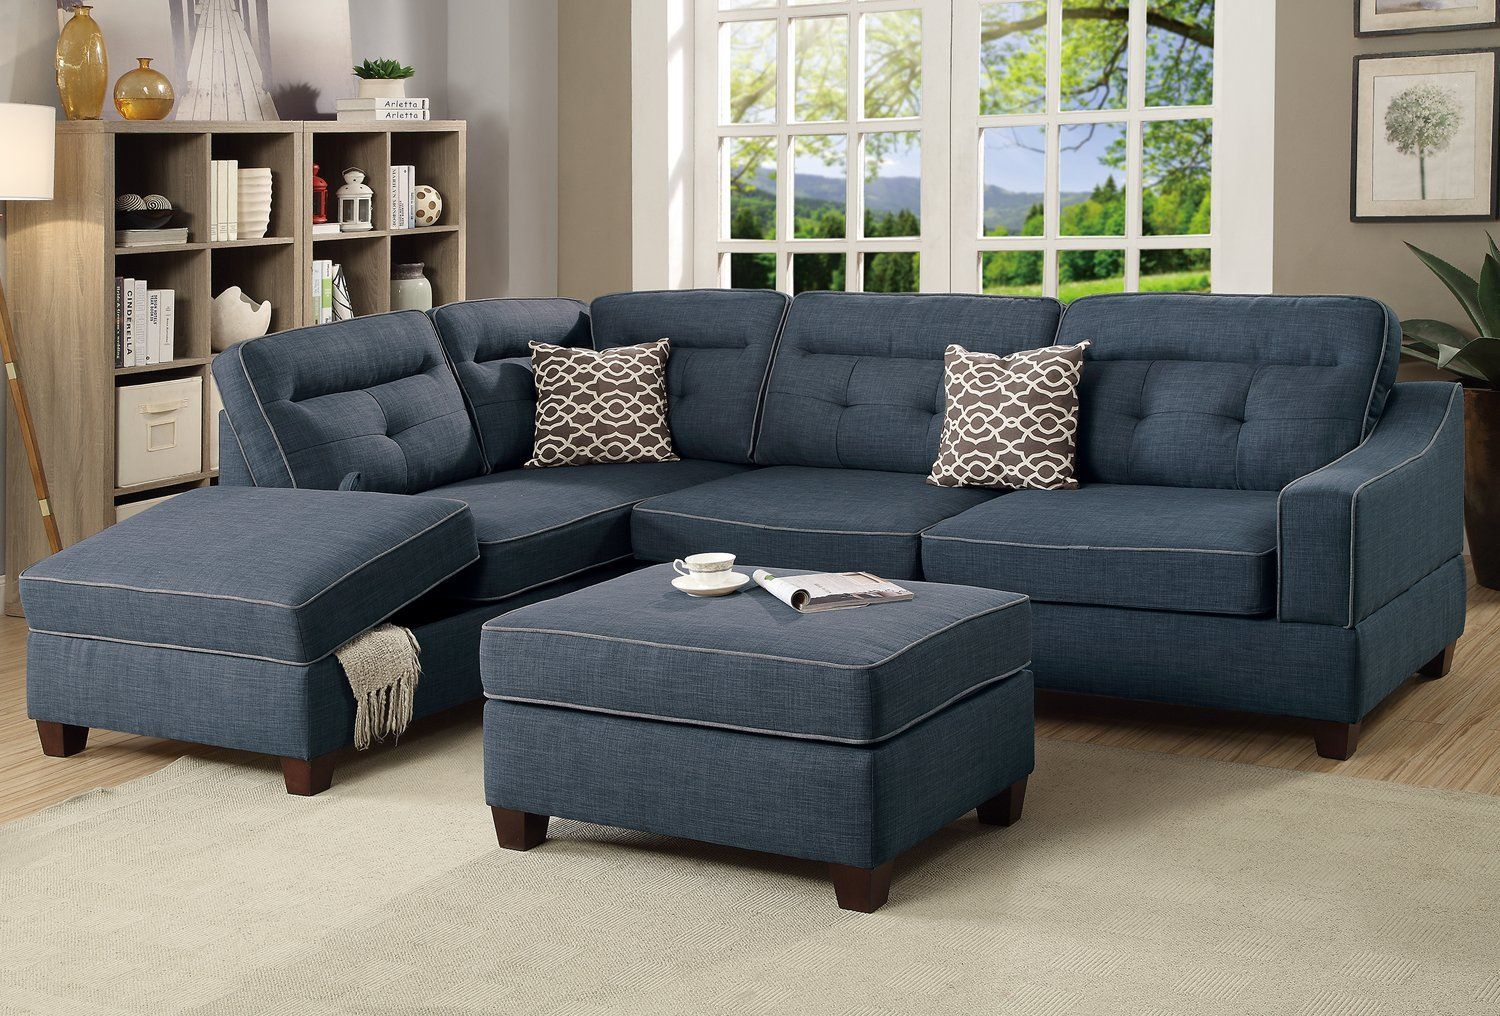 Amazon Com Poundex F6523 Bobkona Kathie Sectional Set Dark Blue Kitchen Dining Sectional Sofa Couch Sectional Sofa Furniture